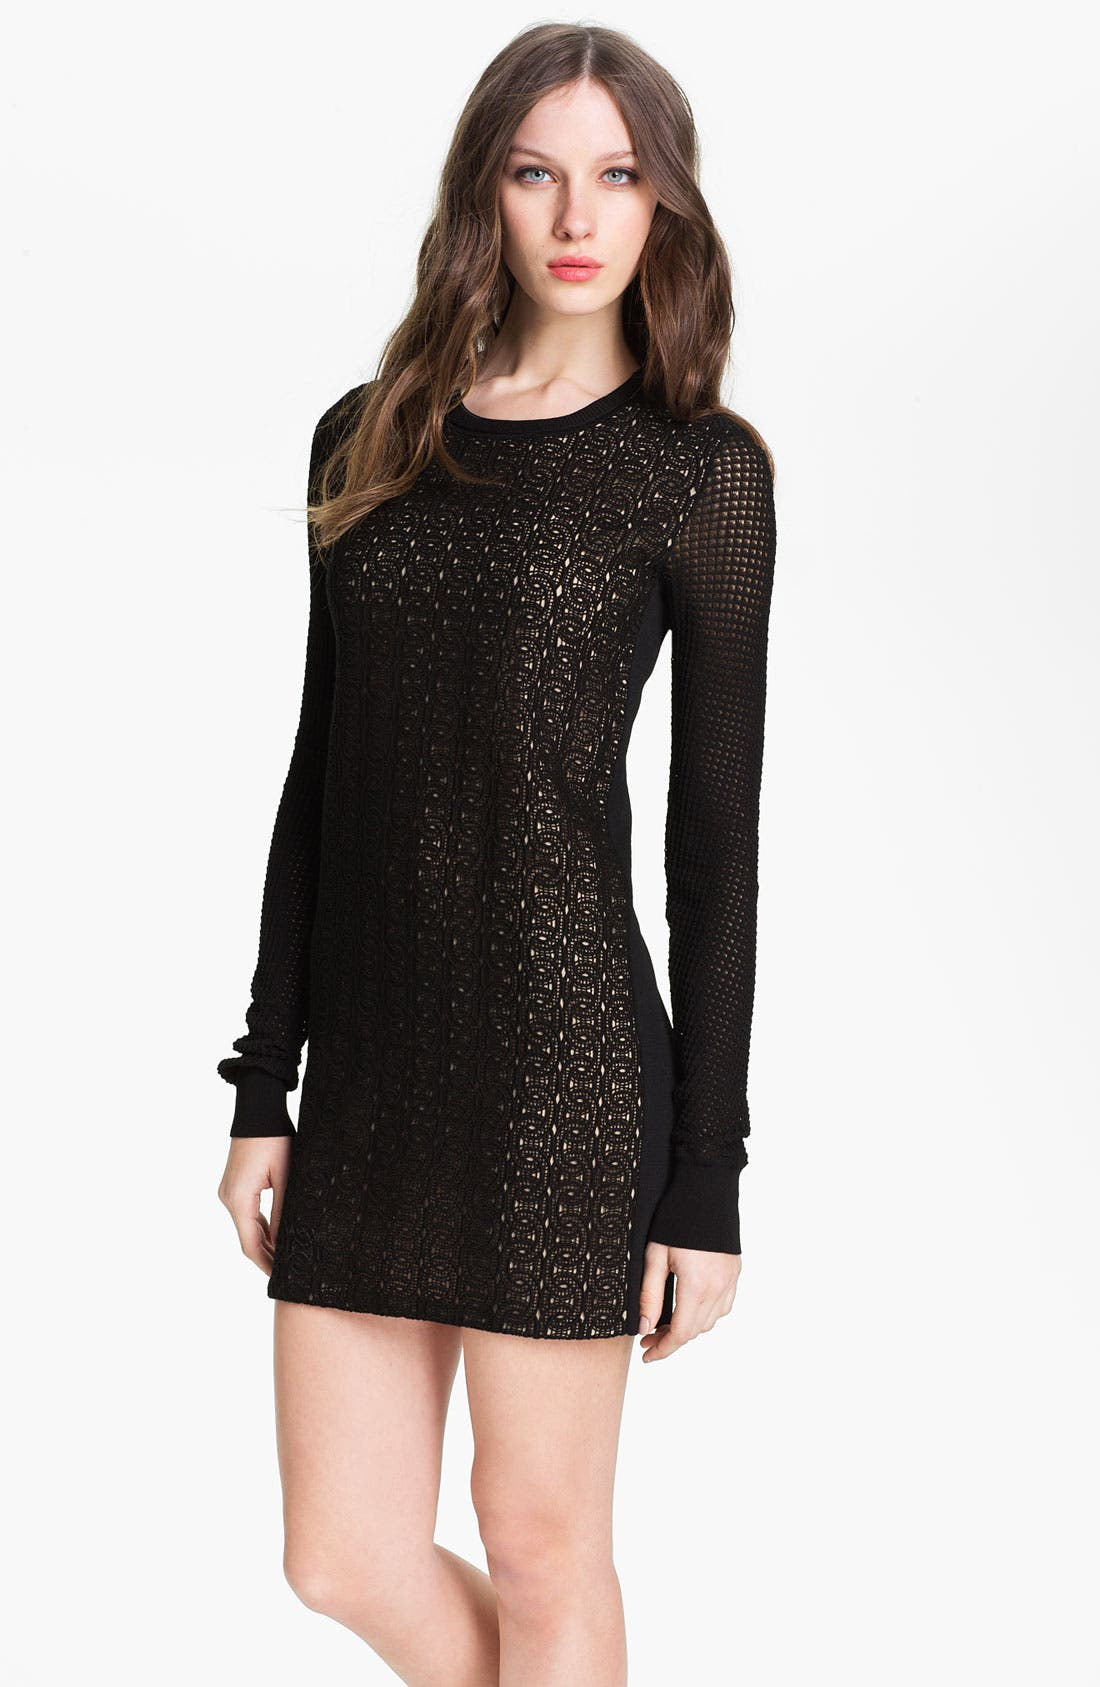 Alternate Image 1 Selected - Diane von Furstenberg 'Linot Bis' Lace Shift Dress